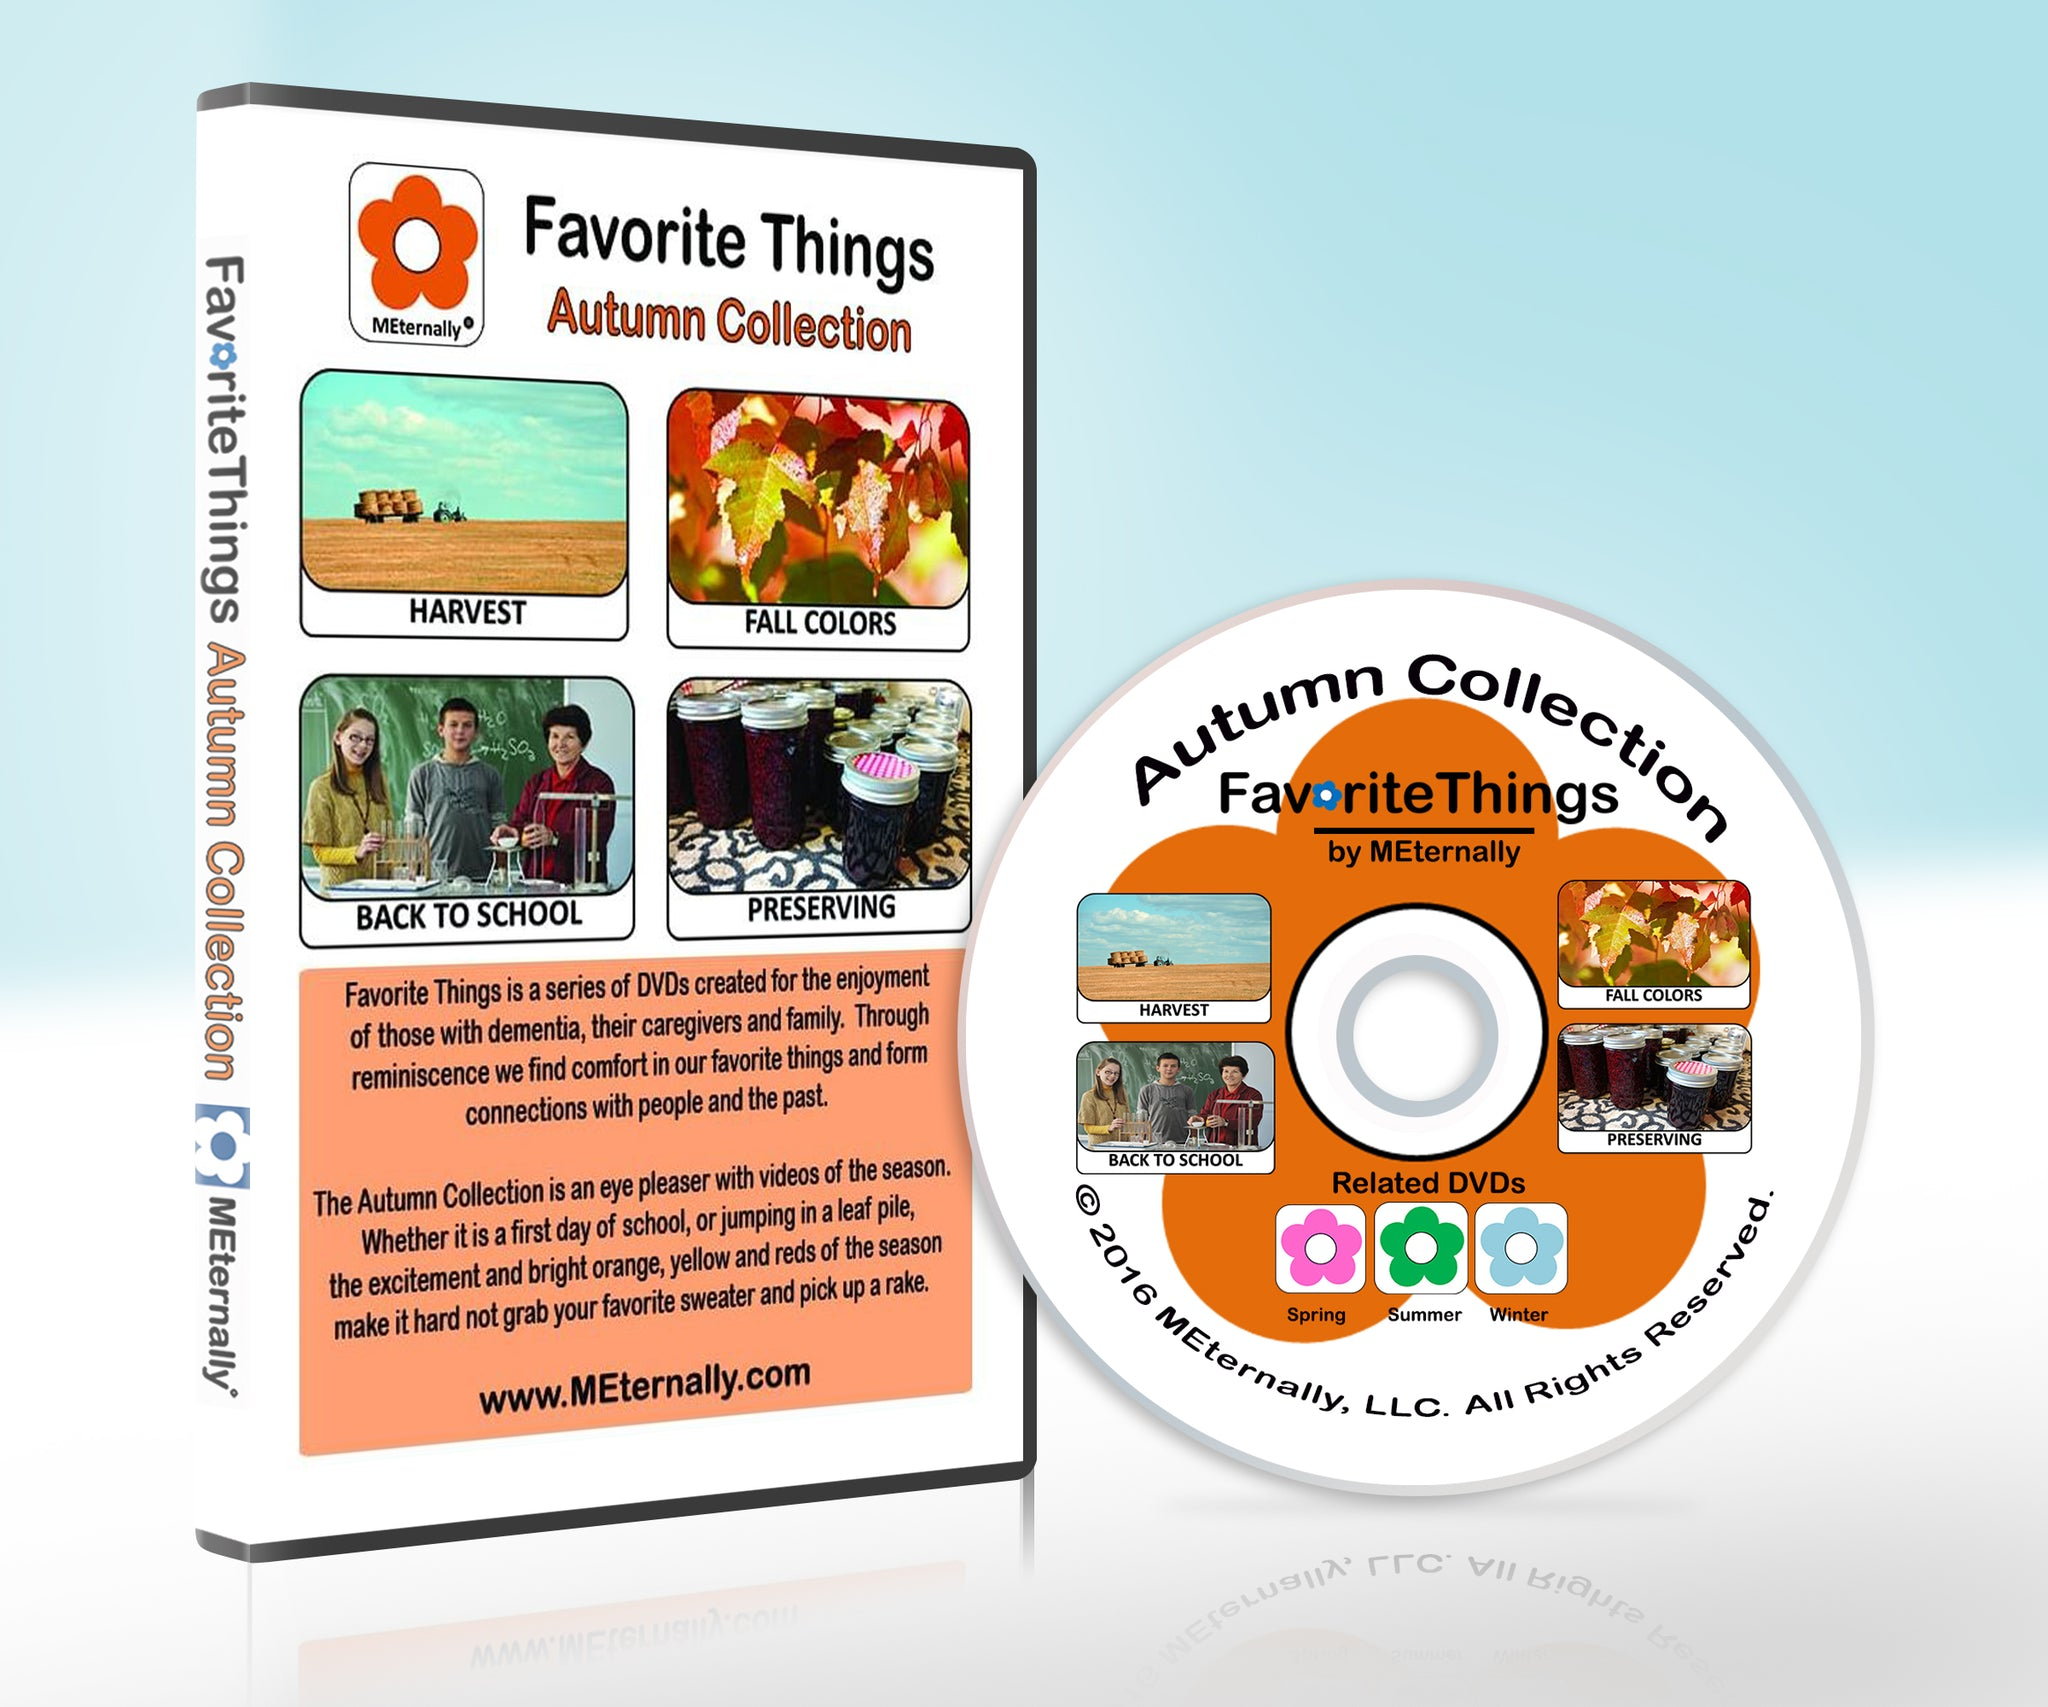 Reminiscence Therapy - Autumn Collection DVD